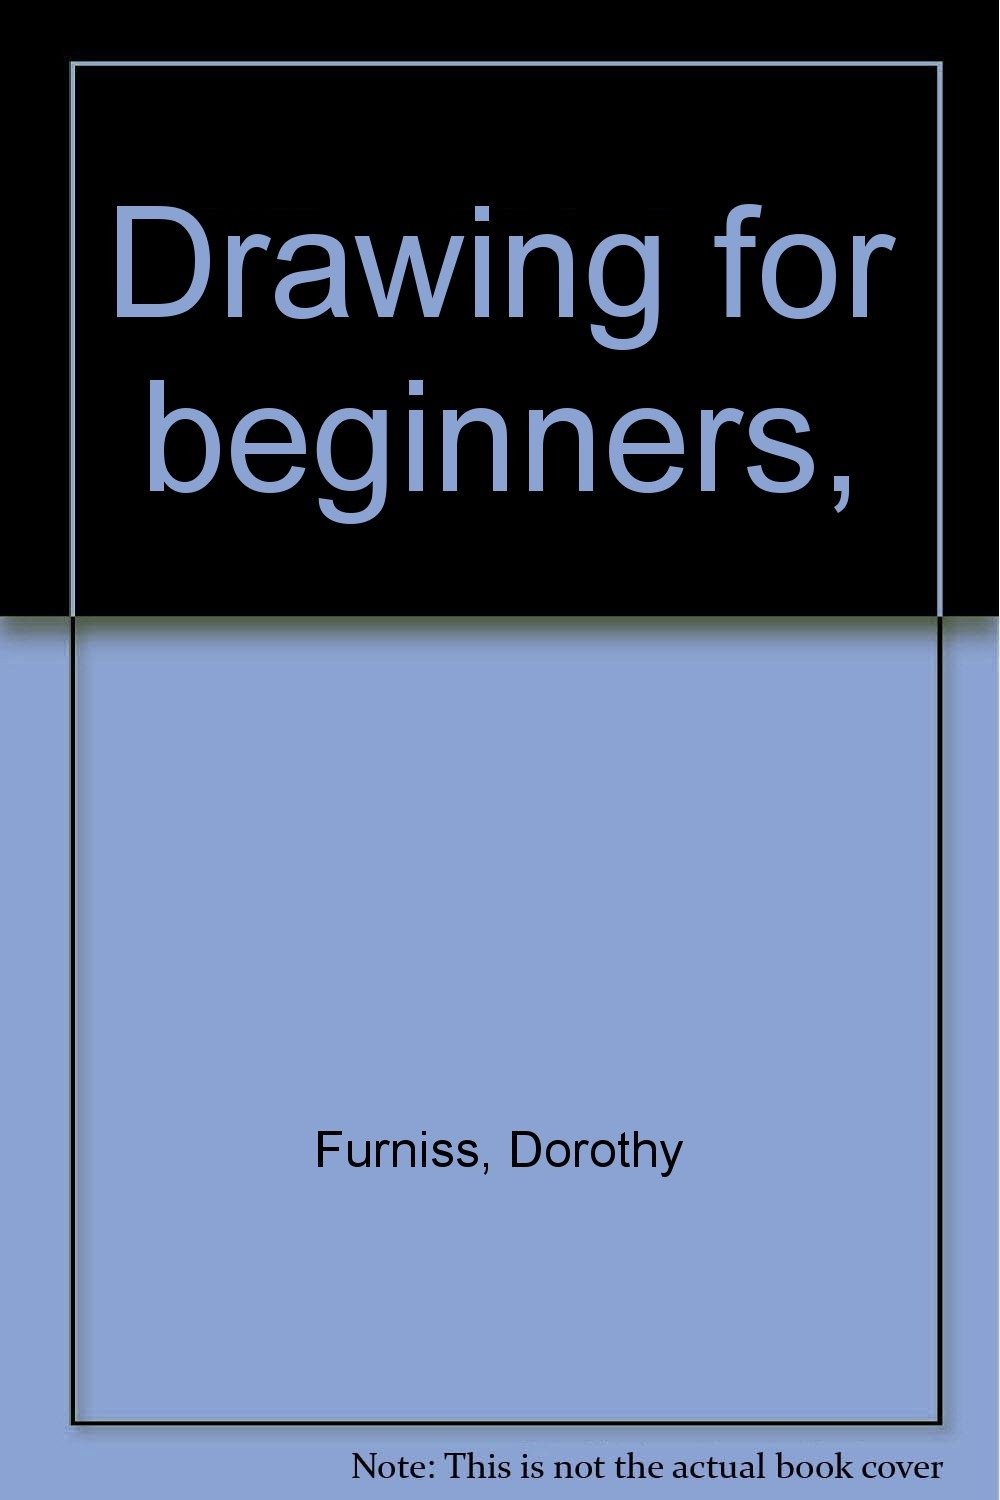 Drawing for beginners,, Furniss, Dorothy